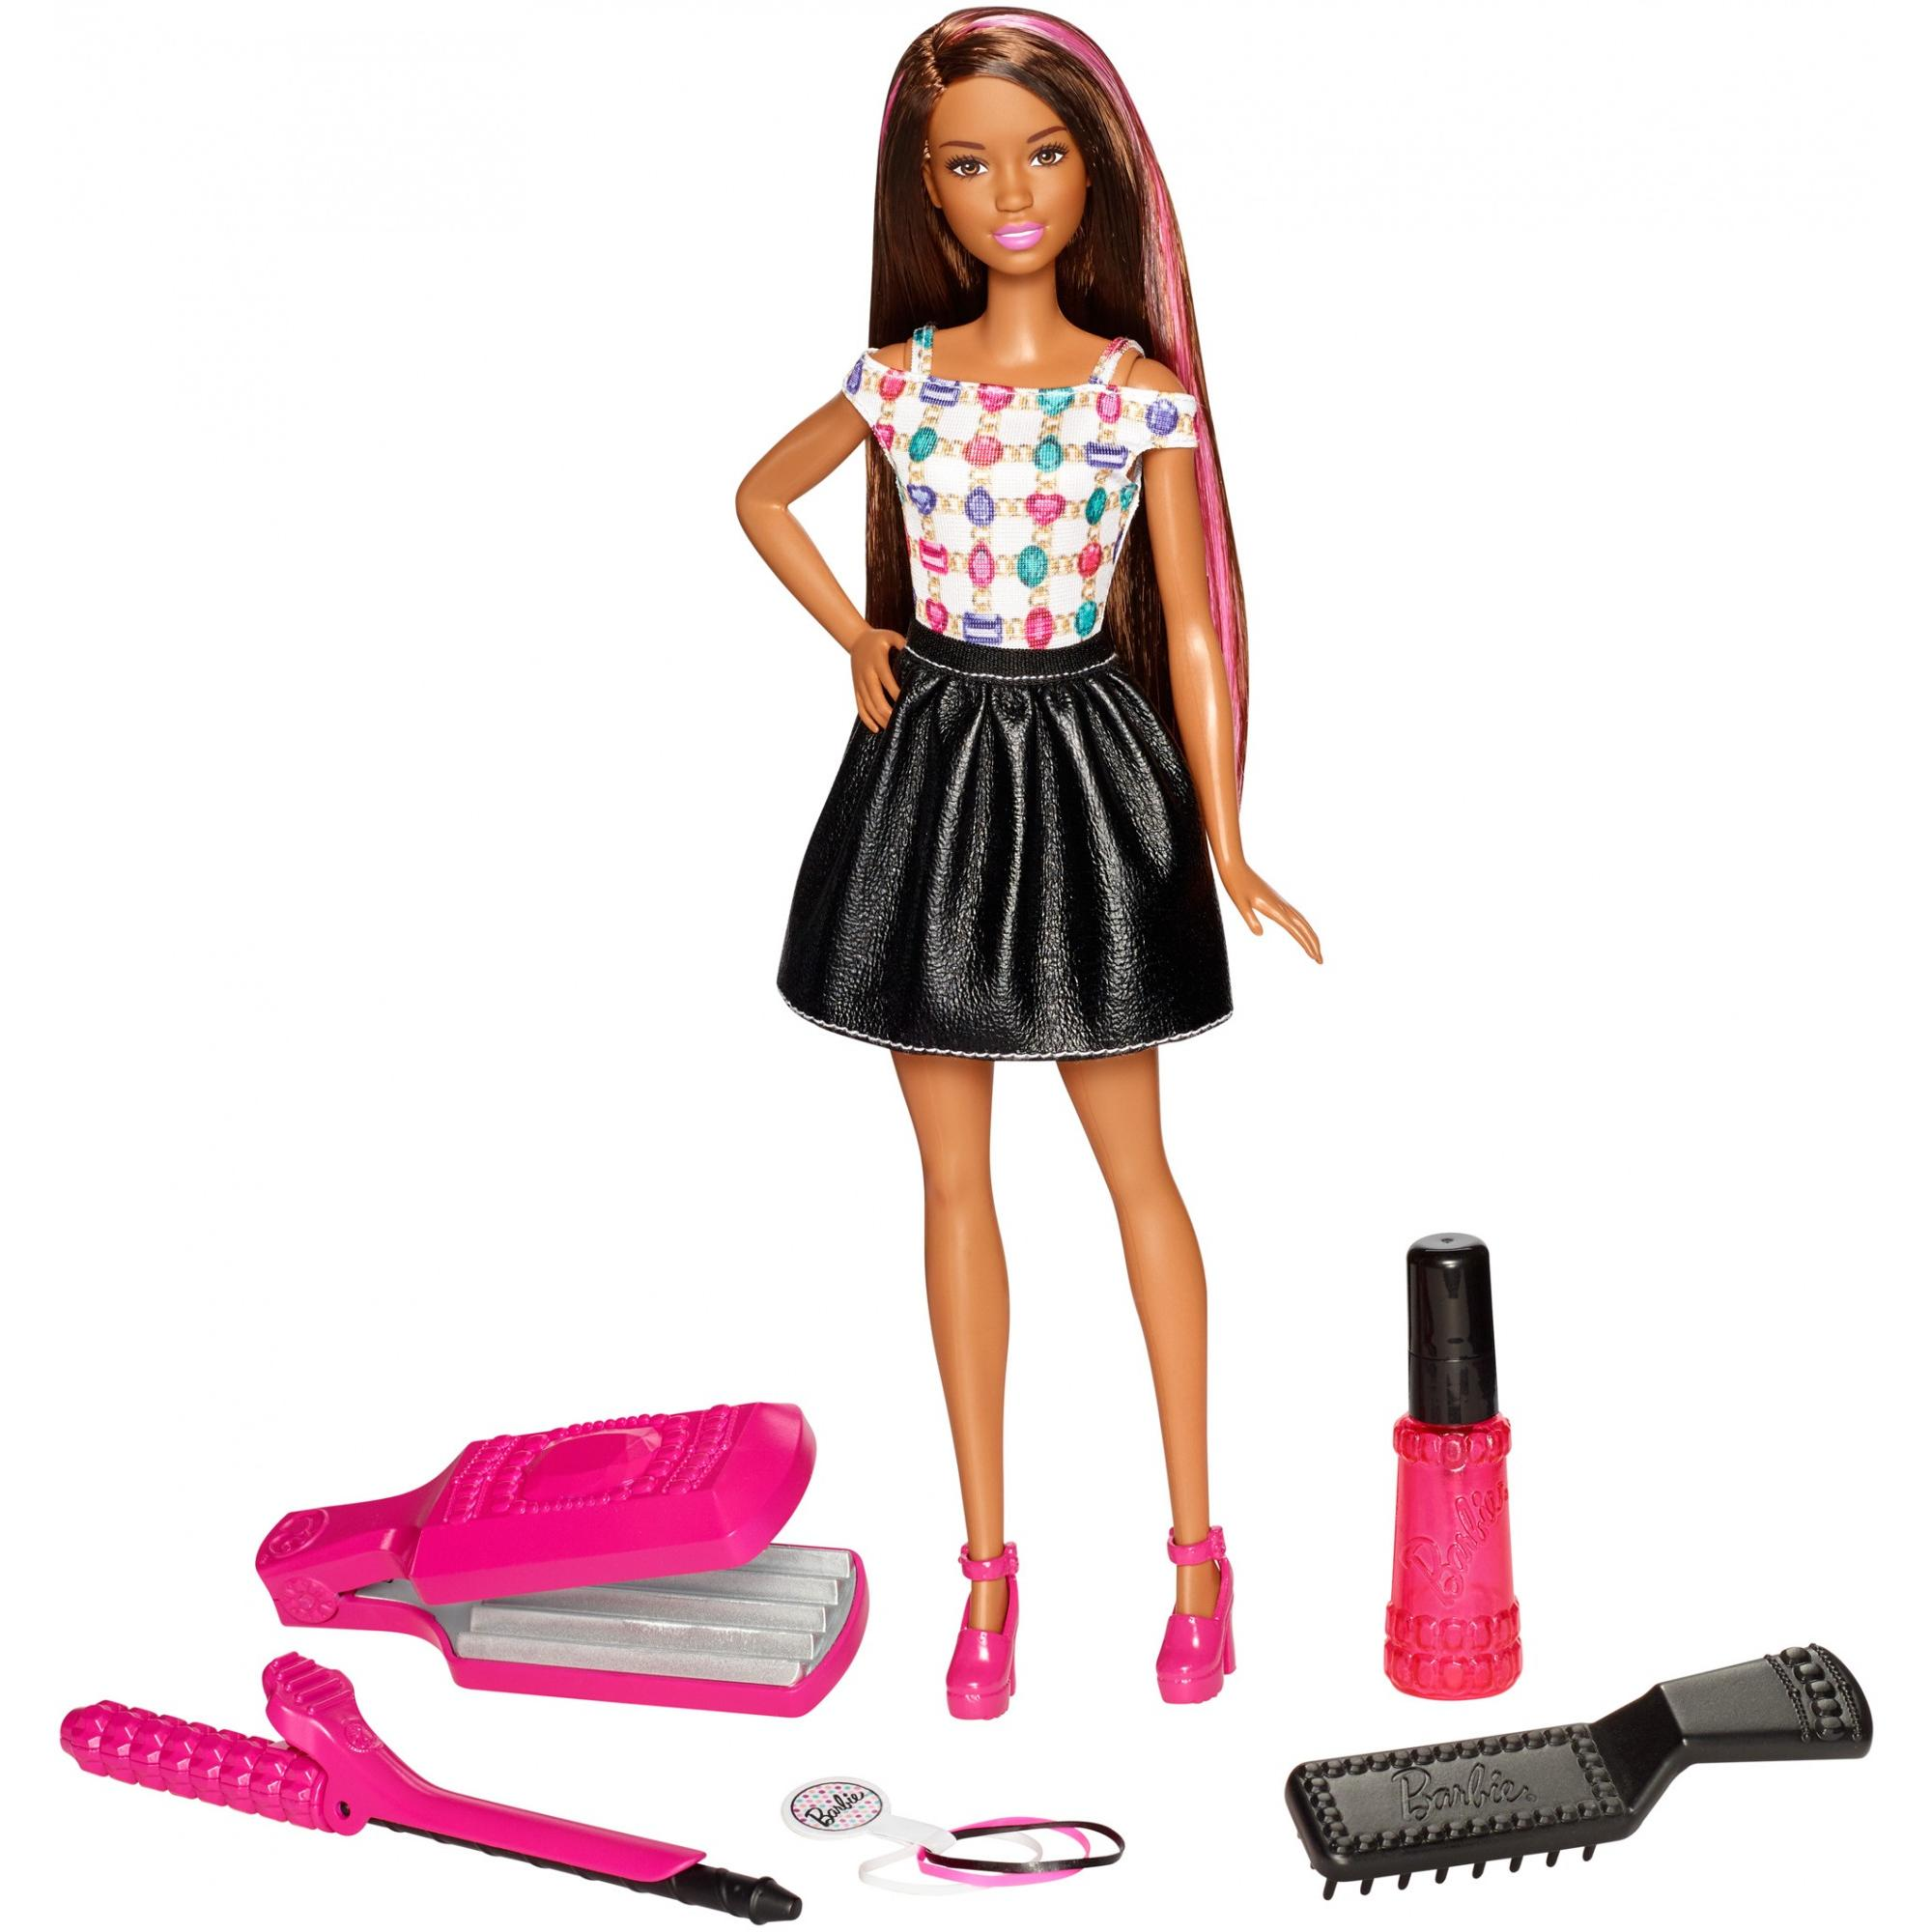 Barbie D.I.Y. Crimp & Curl Nikki Doll